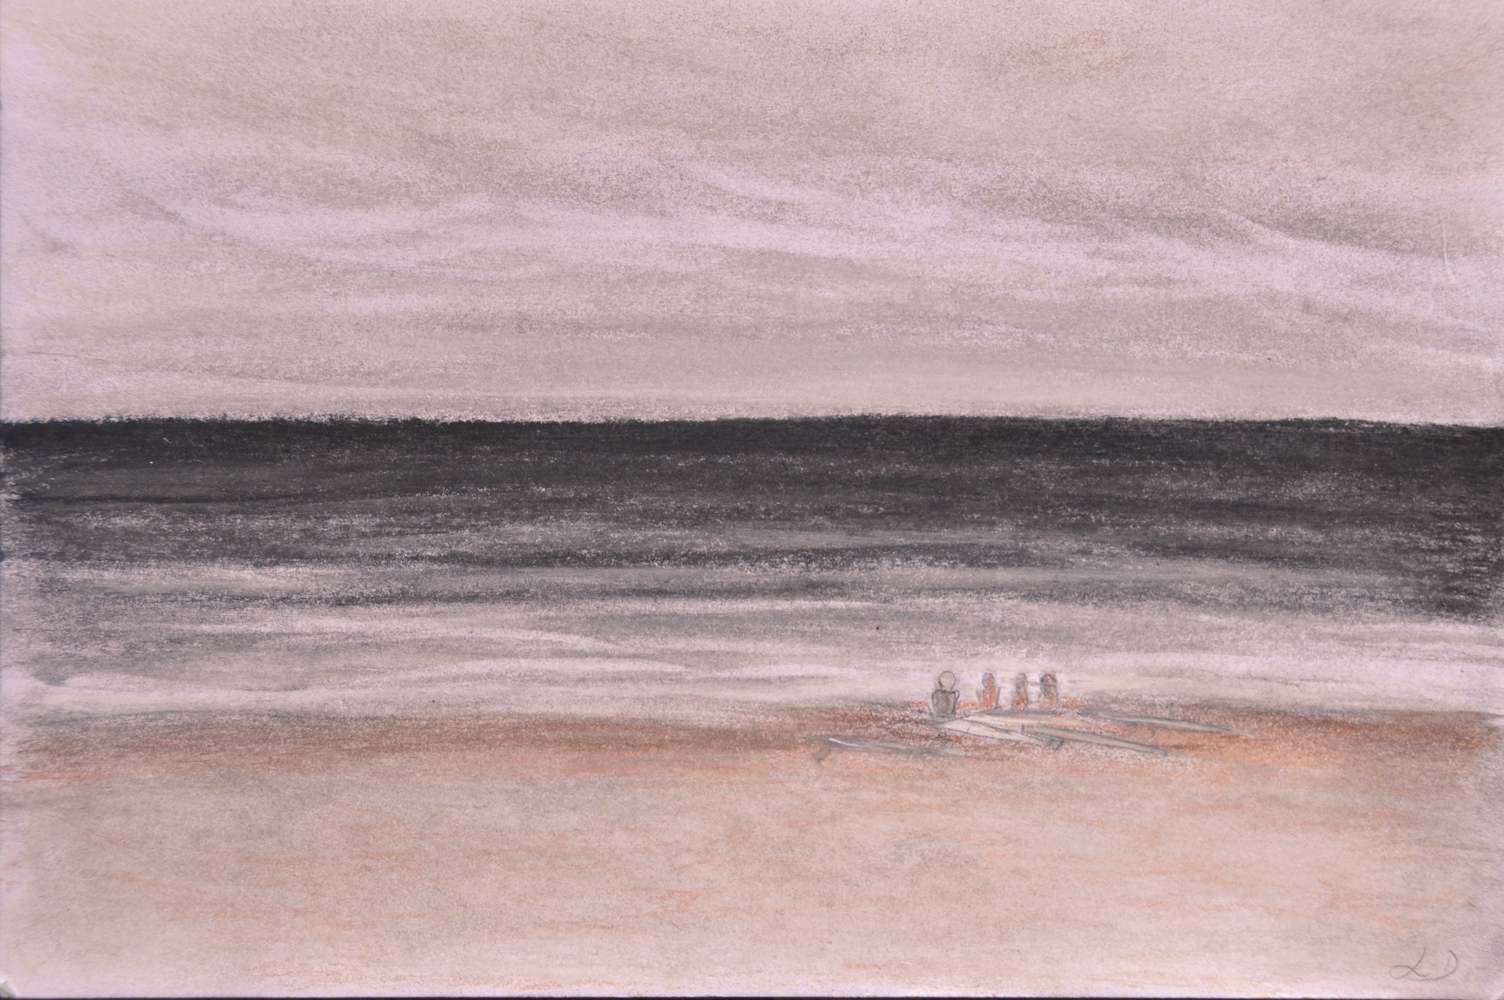 Waiting for the waves, plage du Metro. Sketch, crayon on paper, 16x24, 2017